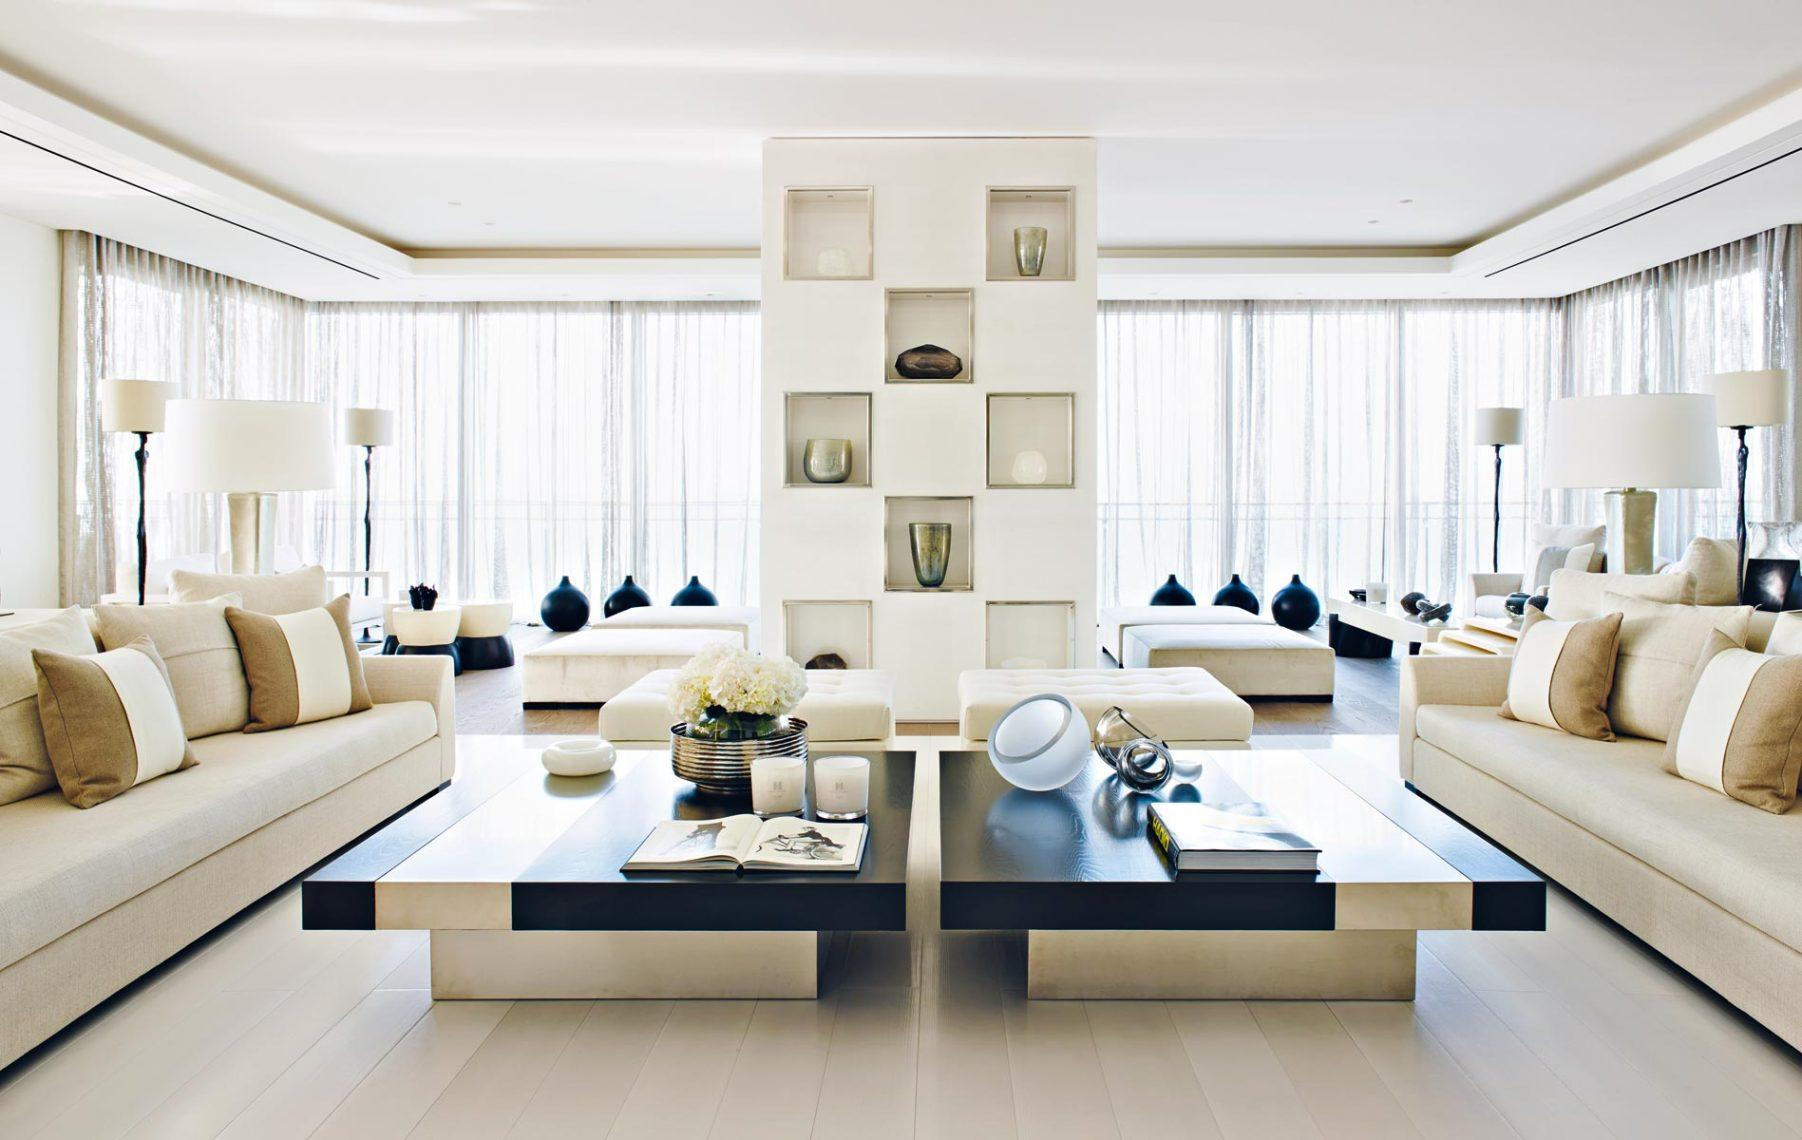 Kelly Hoppen's